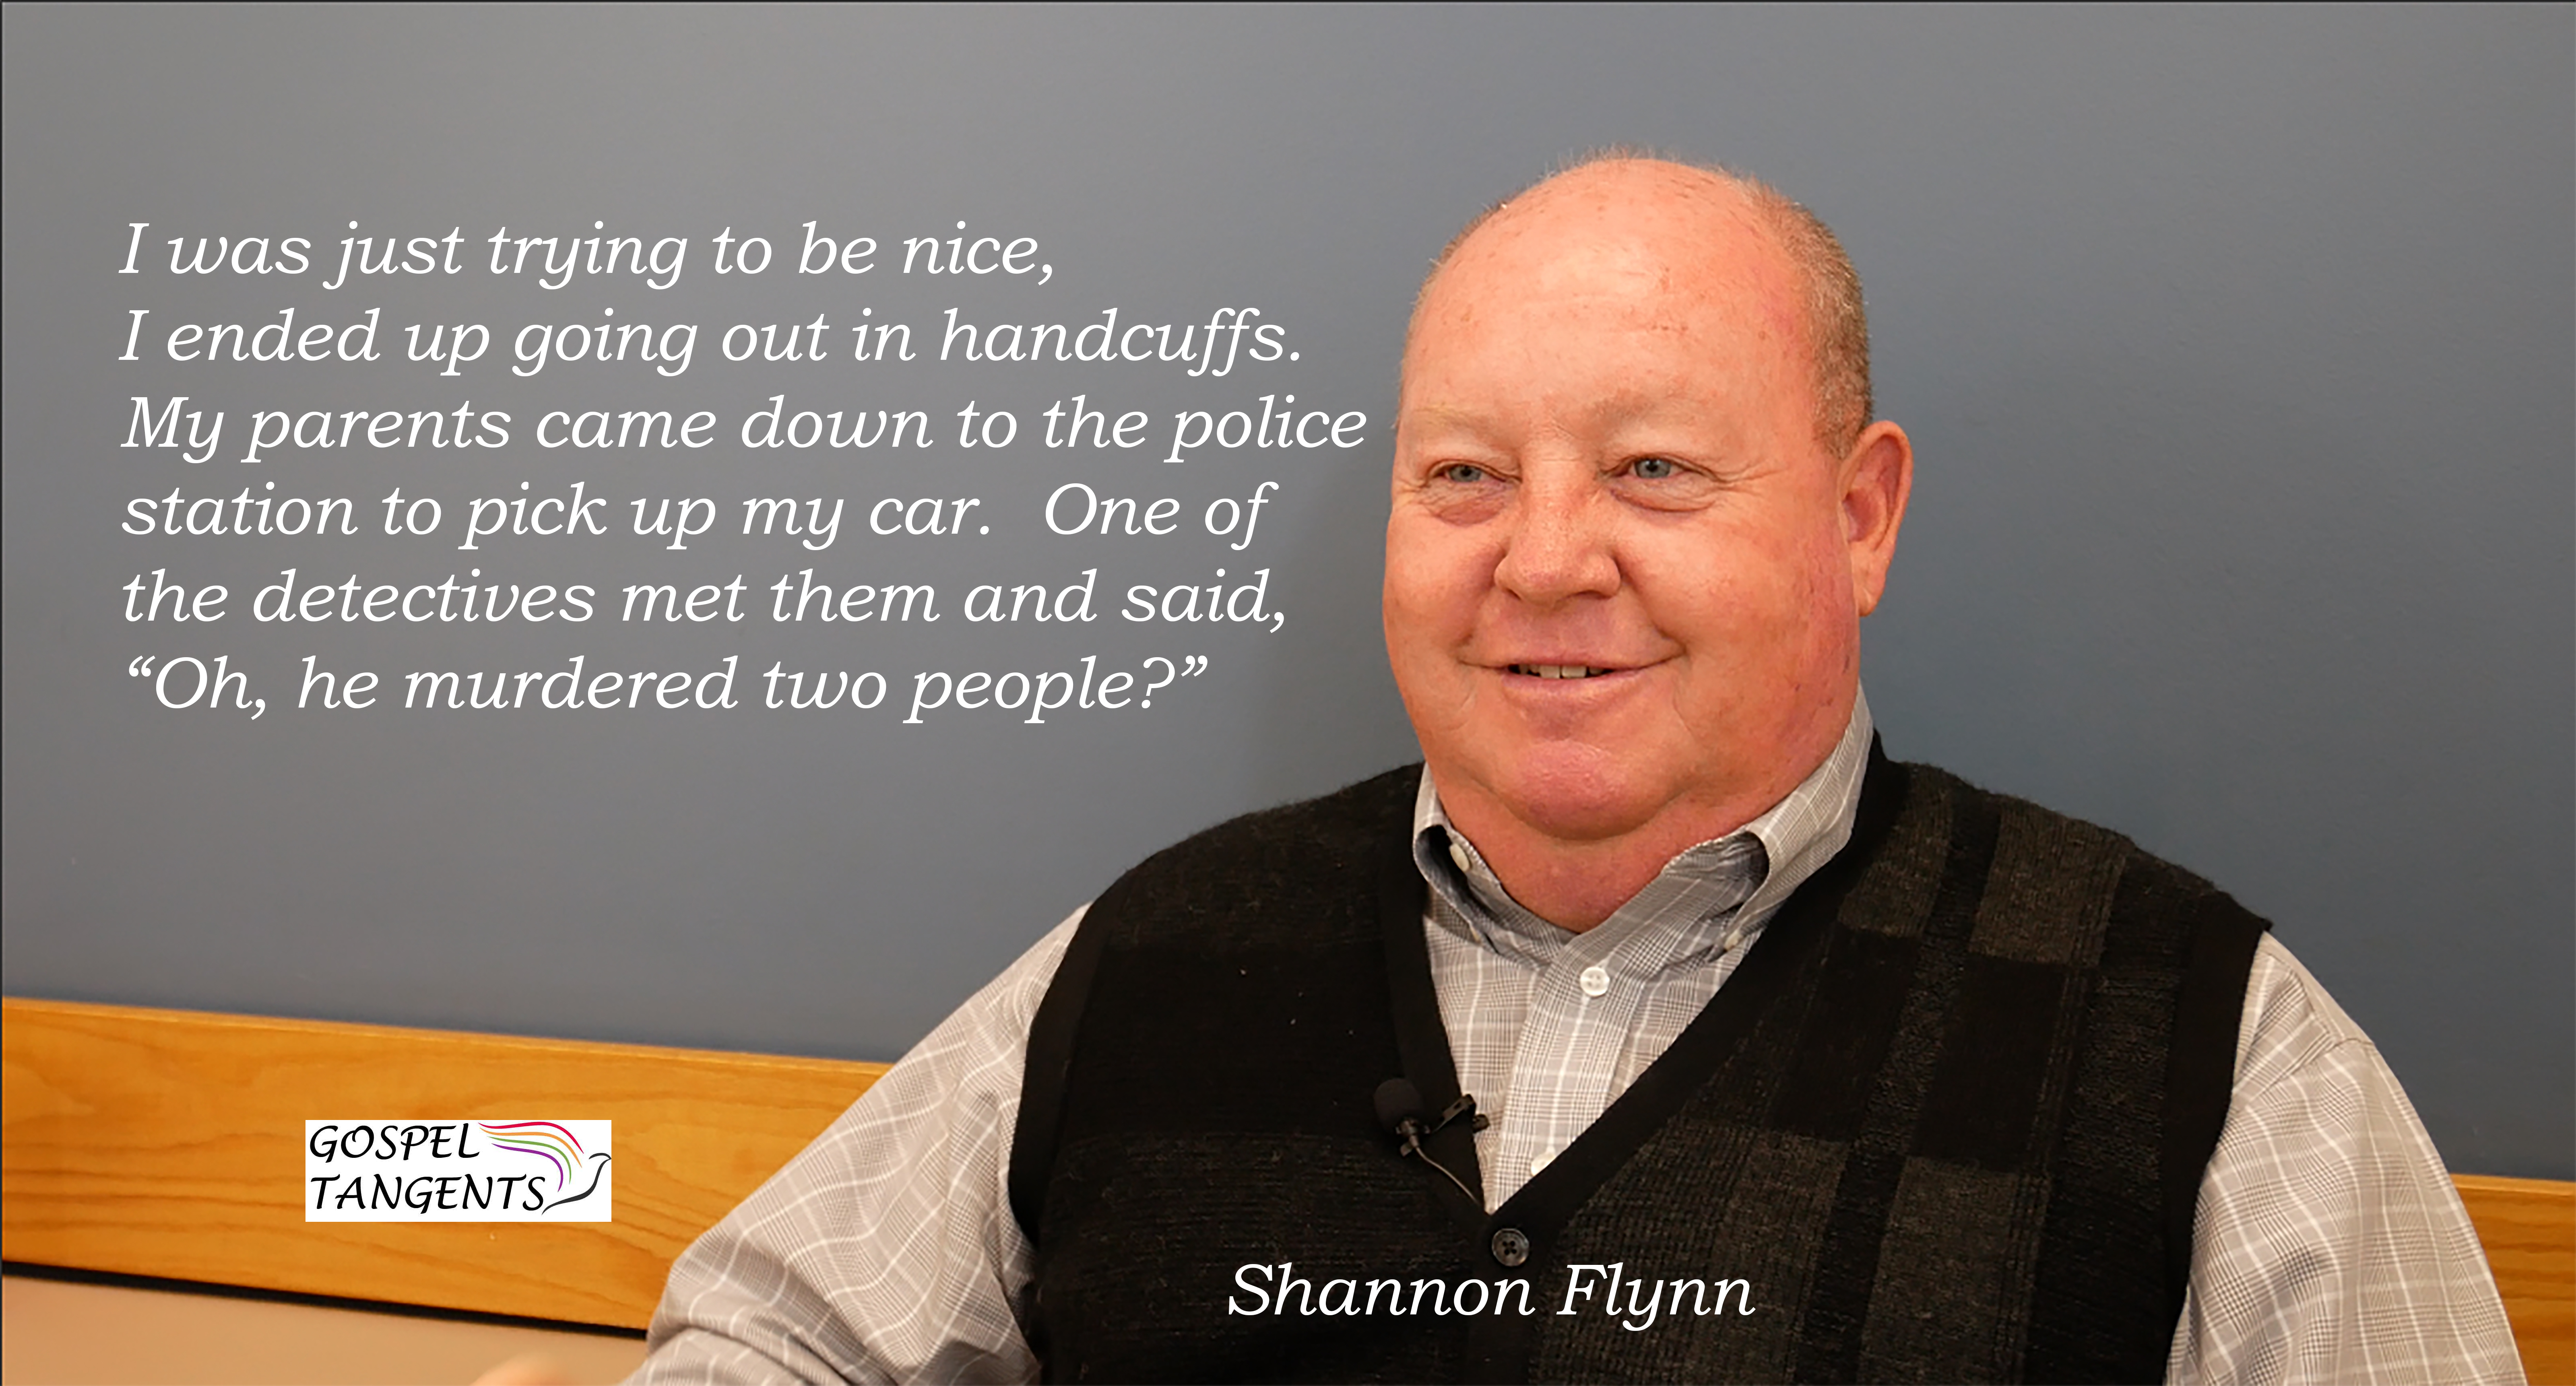 Shannon describes what it was like to be falsely accused of murder.